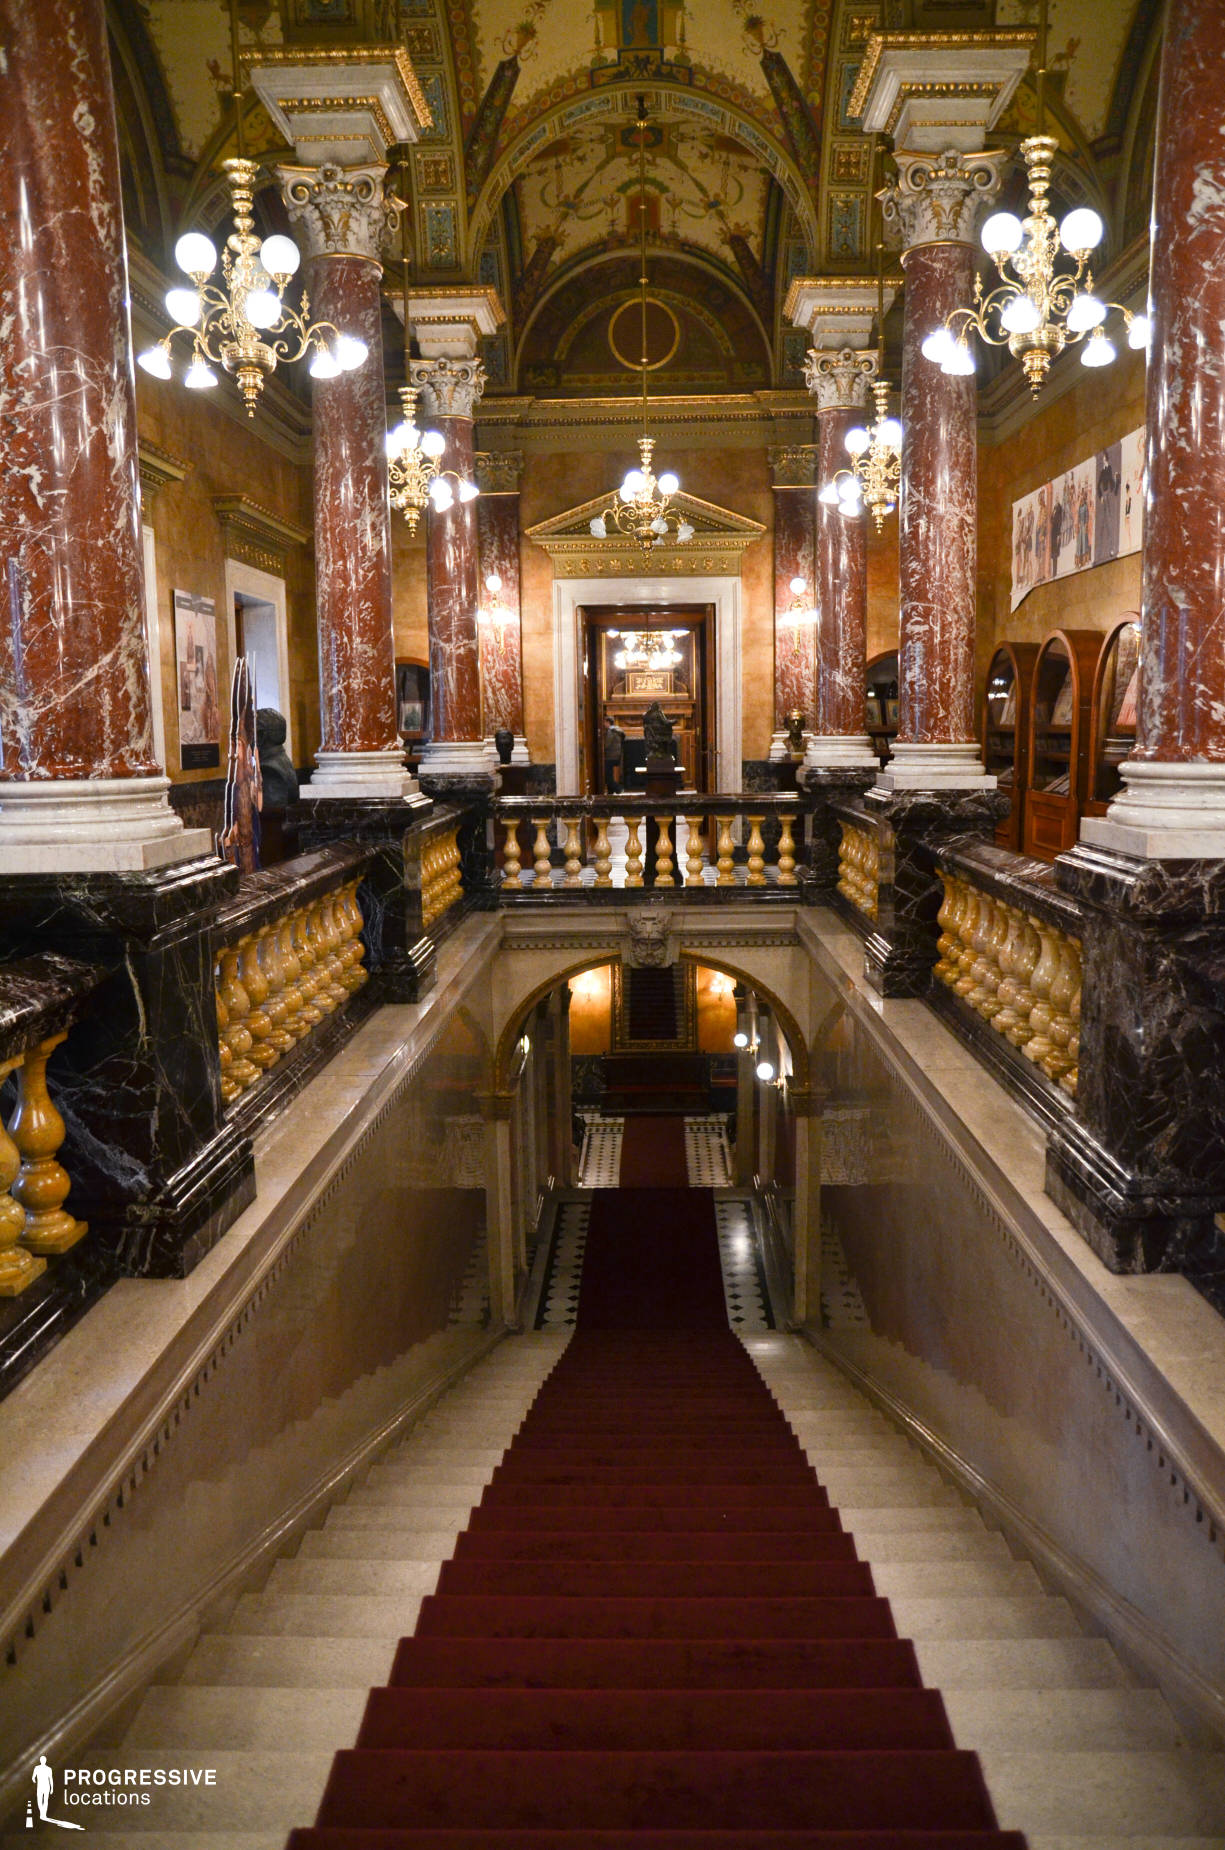 Locations in Hungary: Royal Marble Staircase, Opera House